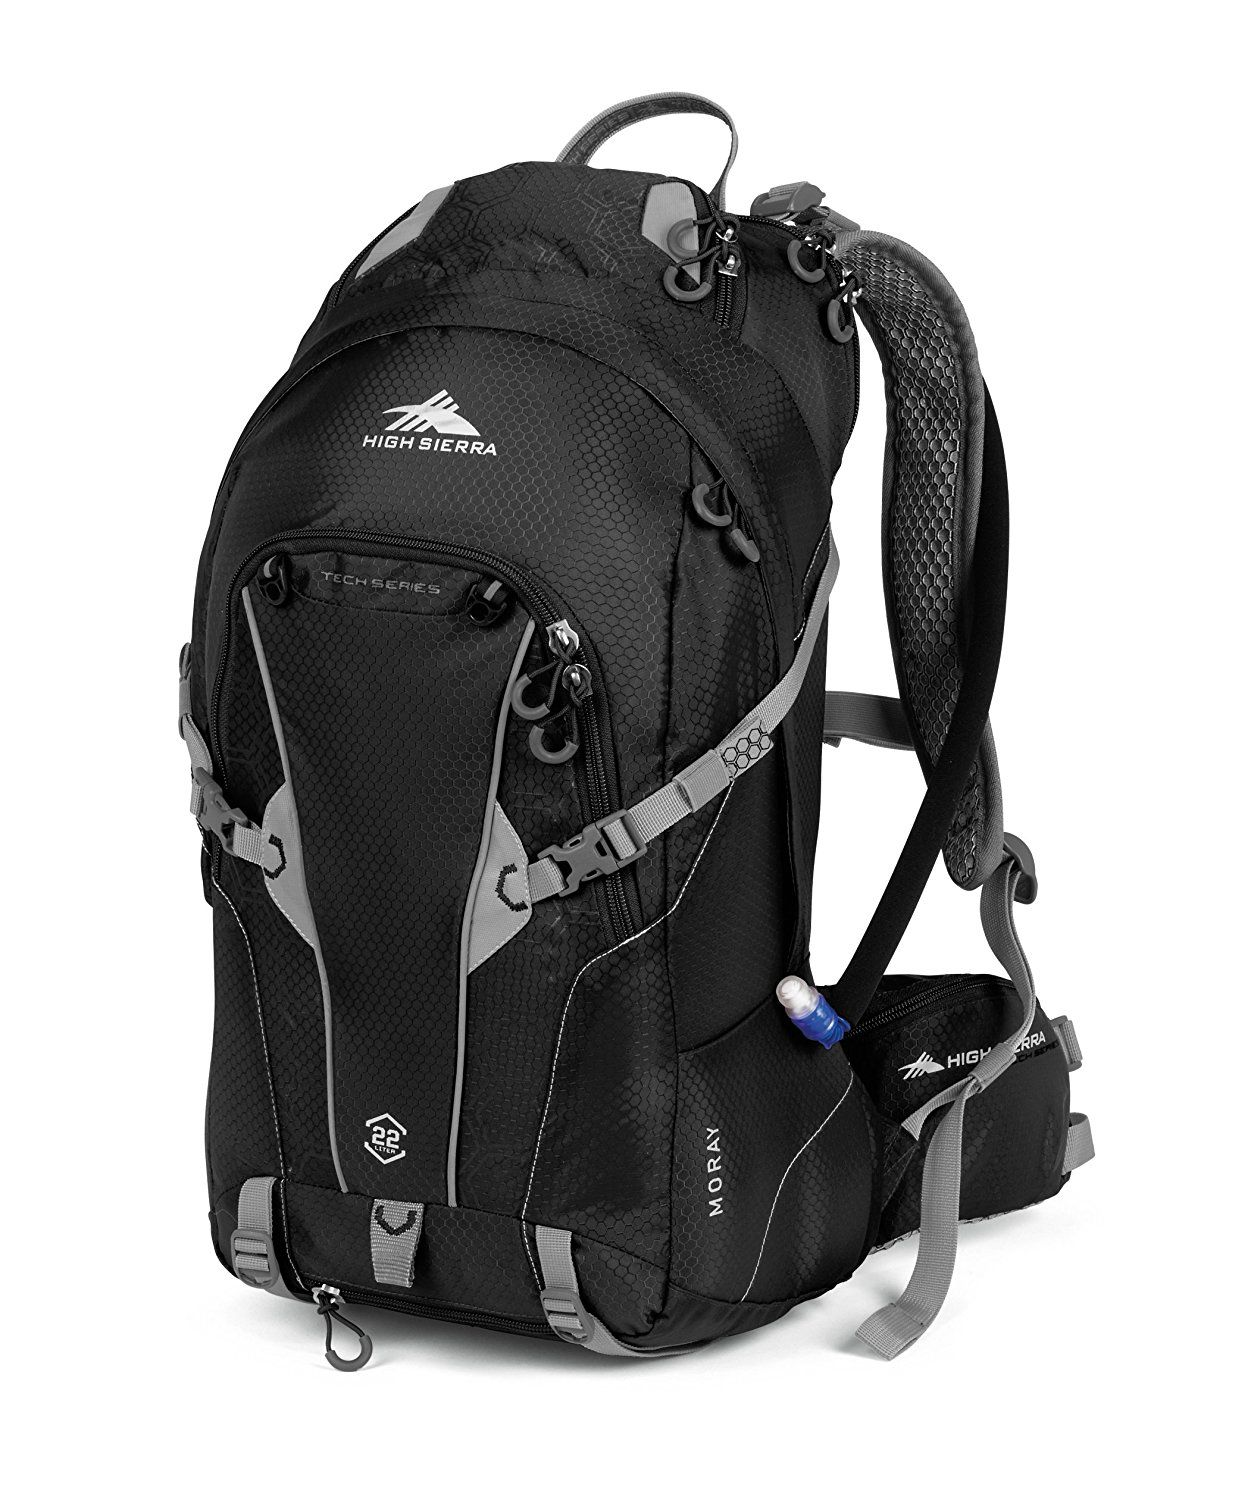 b3766c784 High Sierra Moray 22 Hydration Pack * You can get more details by ...